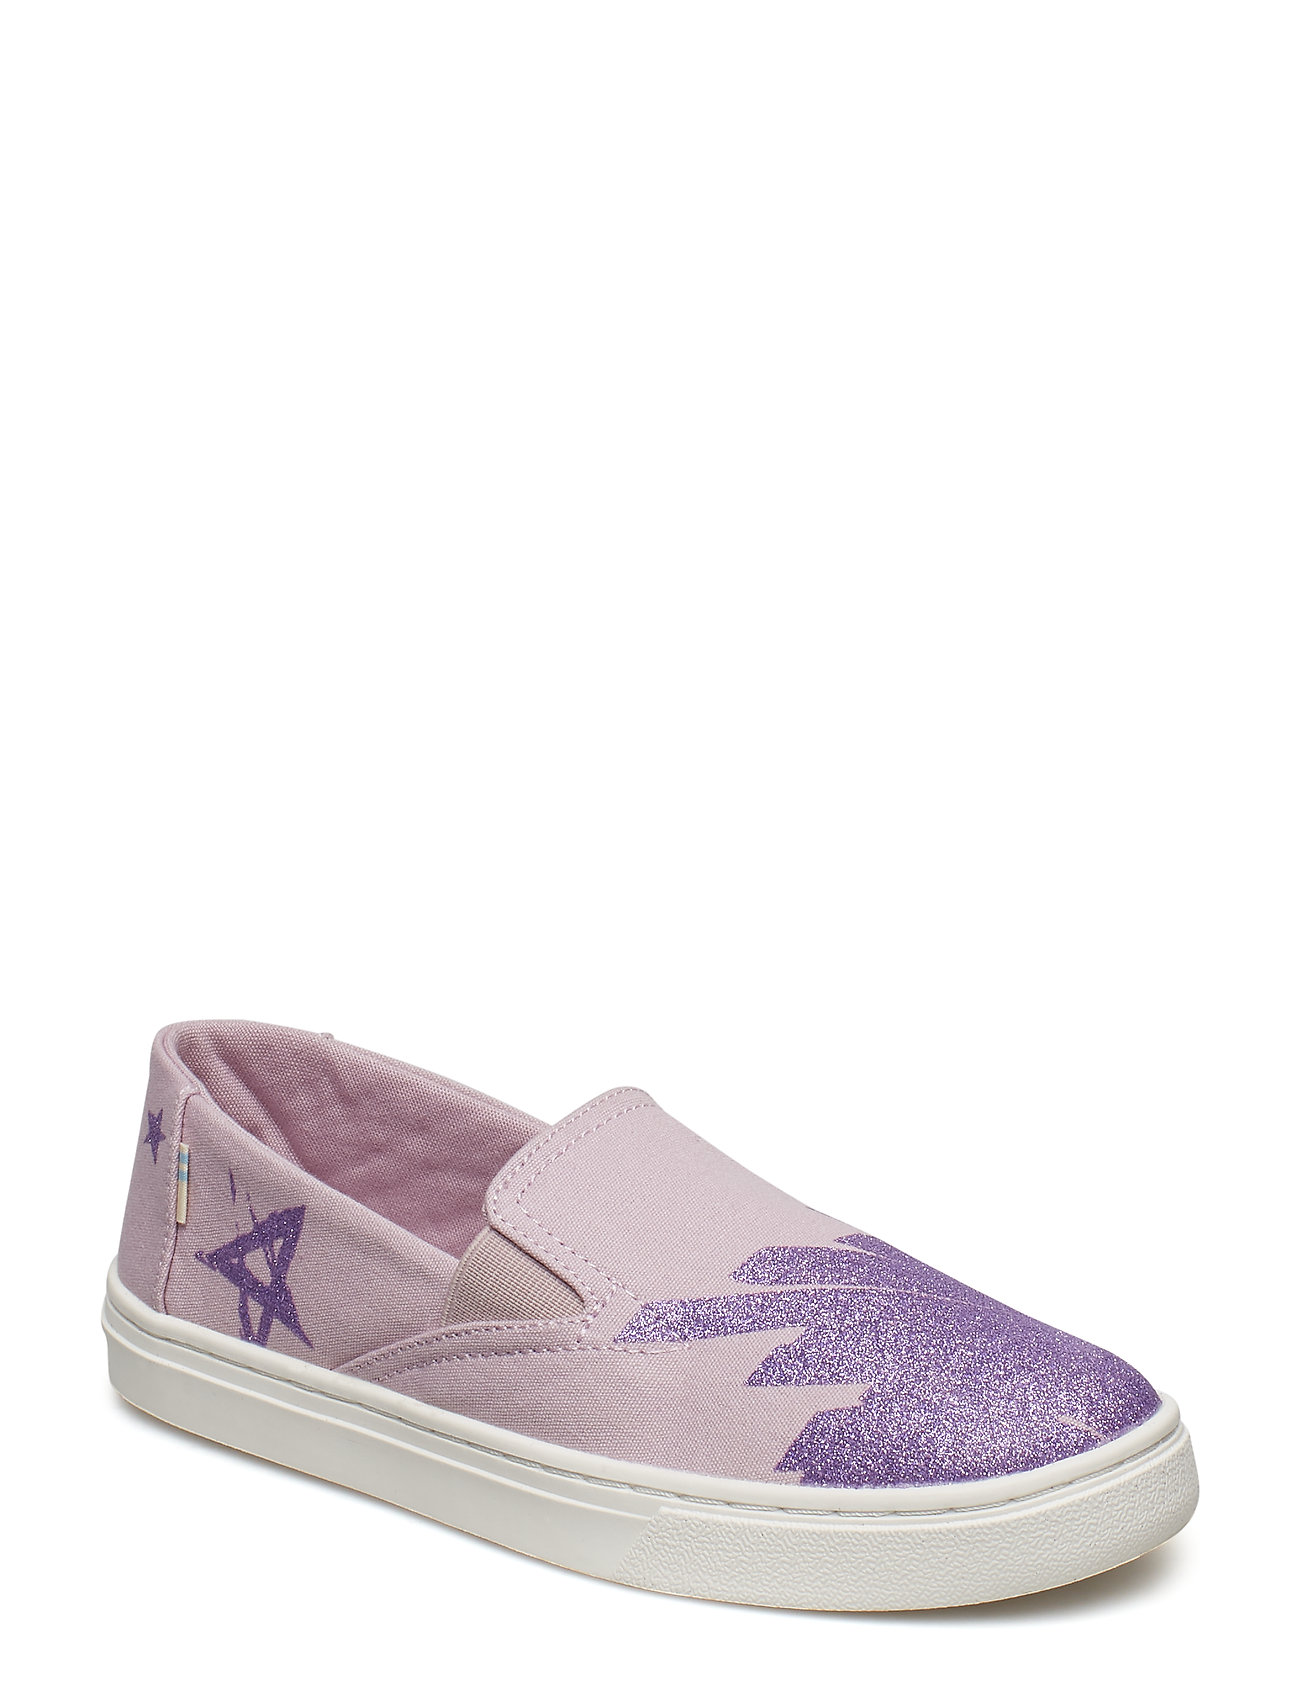 TOMS Glitter Star Canvas Luca - BURNISHED LILAC